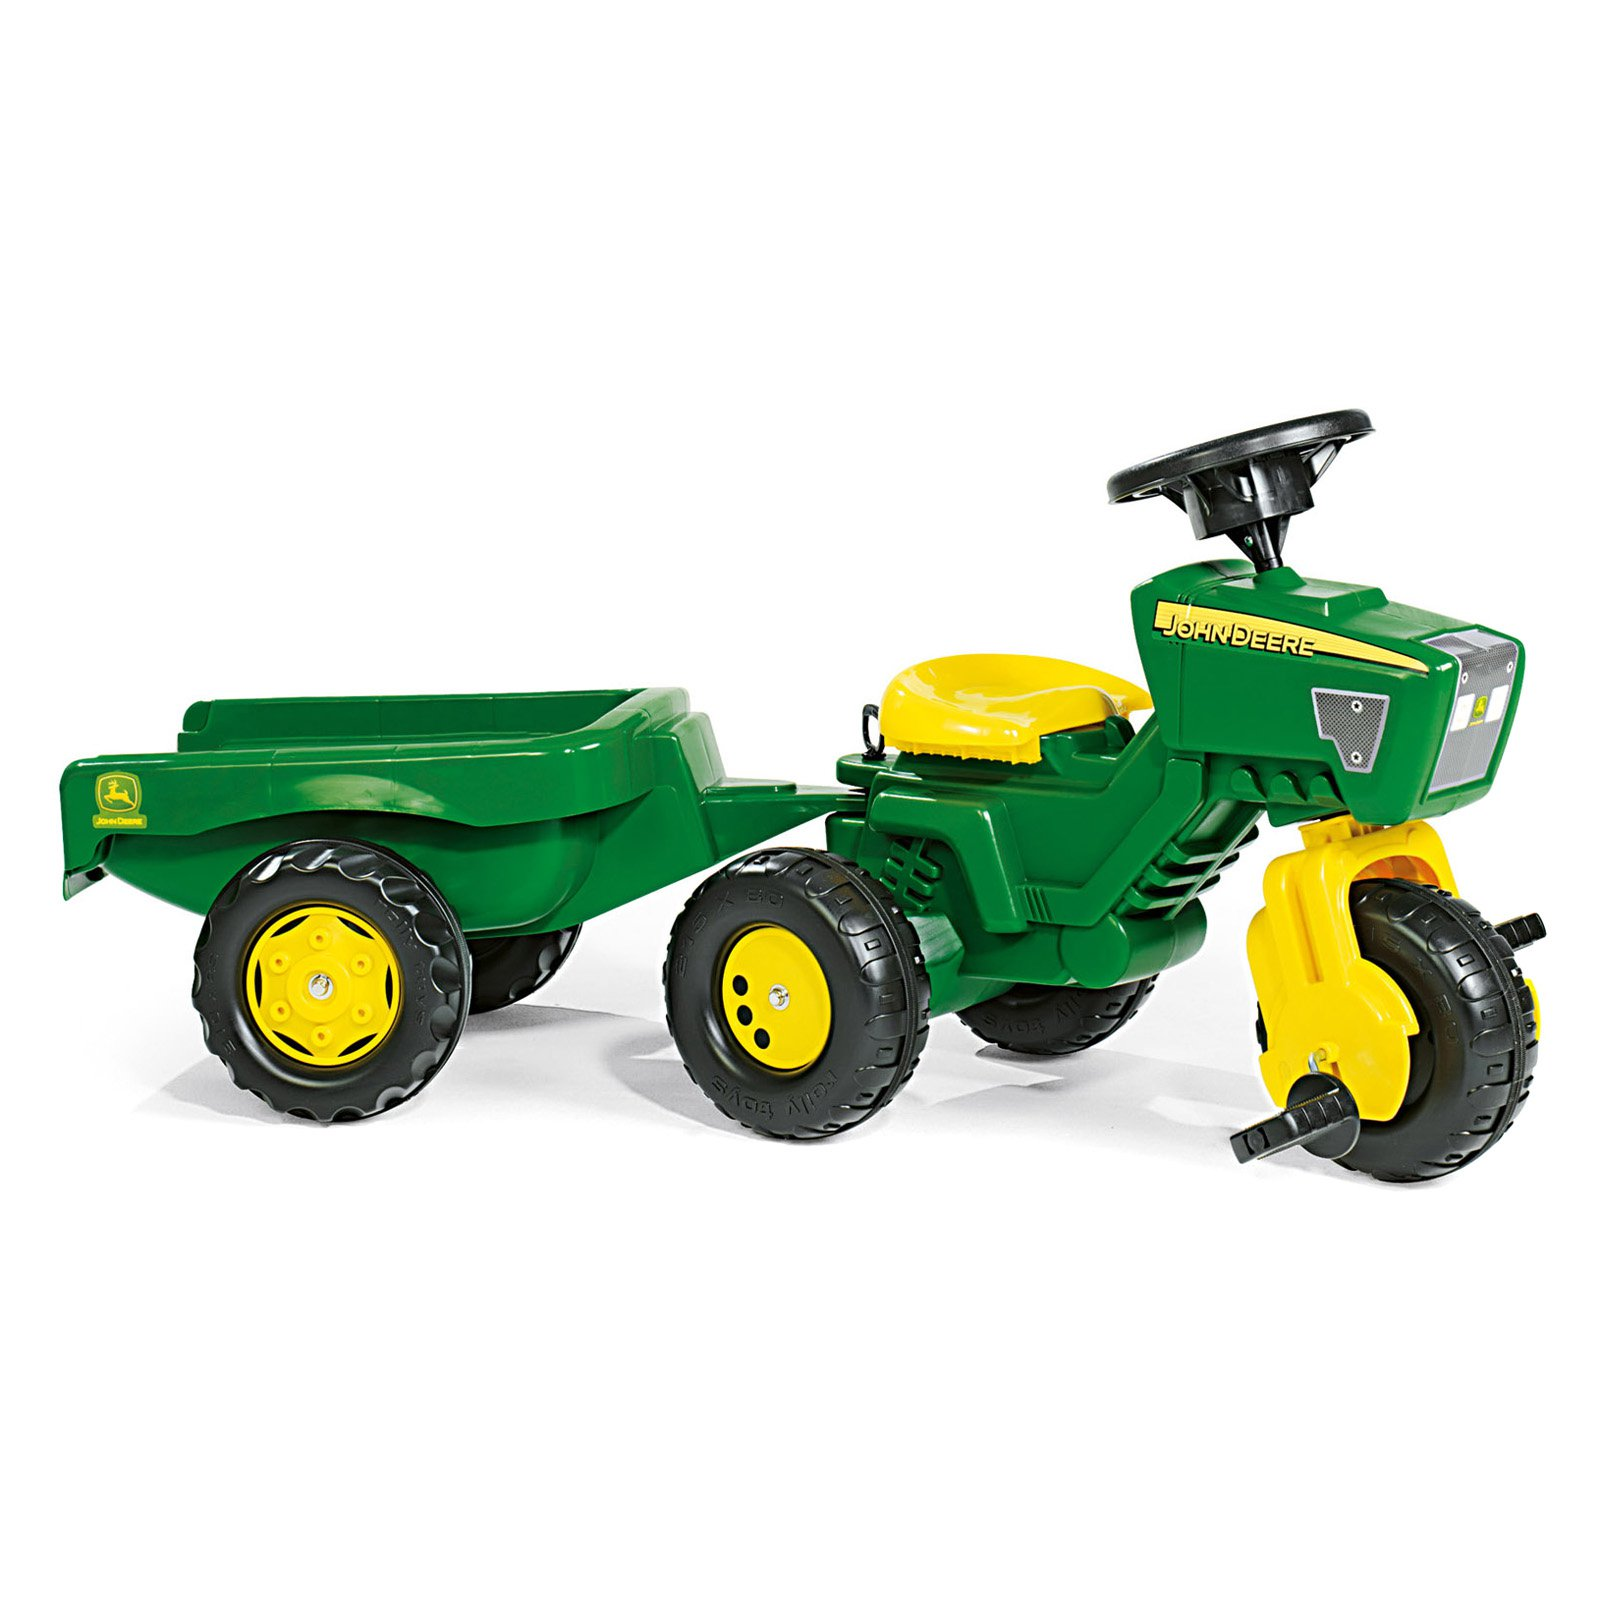 John Deere 3 Wheel Tractor with Trailer Pedal Riding Toy